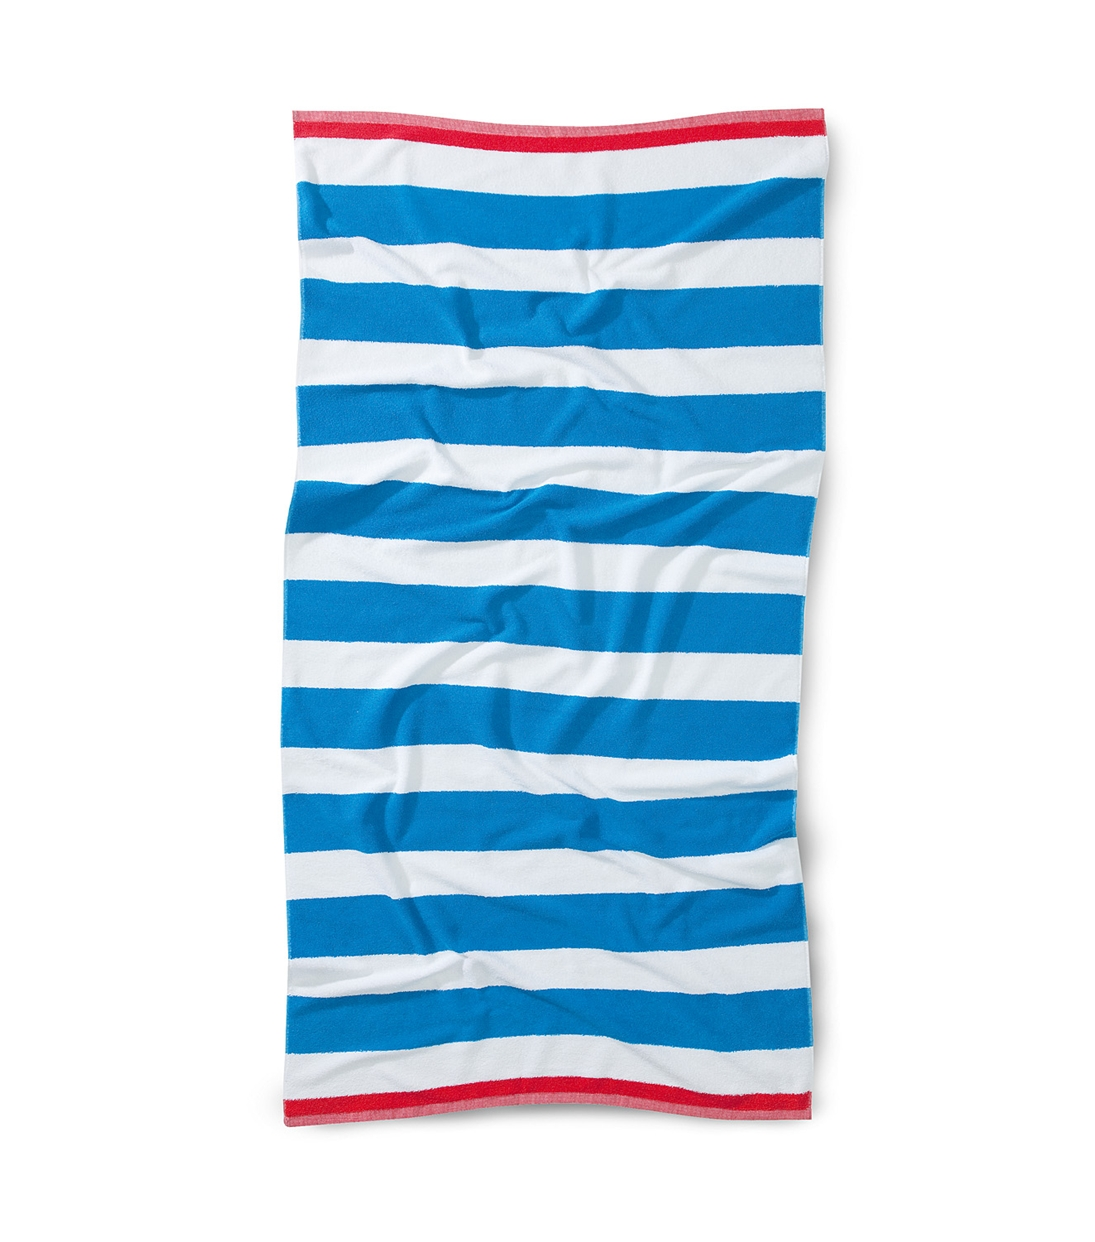 Hand Towel Near Me: Naked With The Bath Towel In Hand • THE Stephane ANDRE